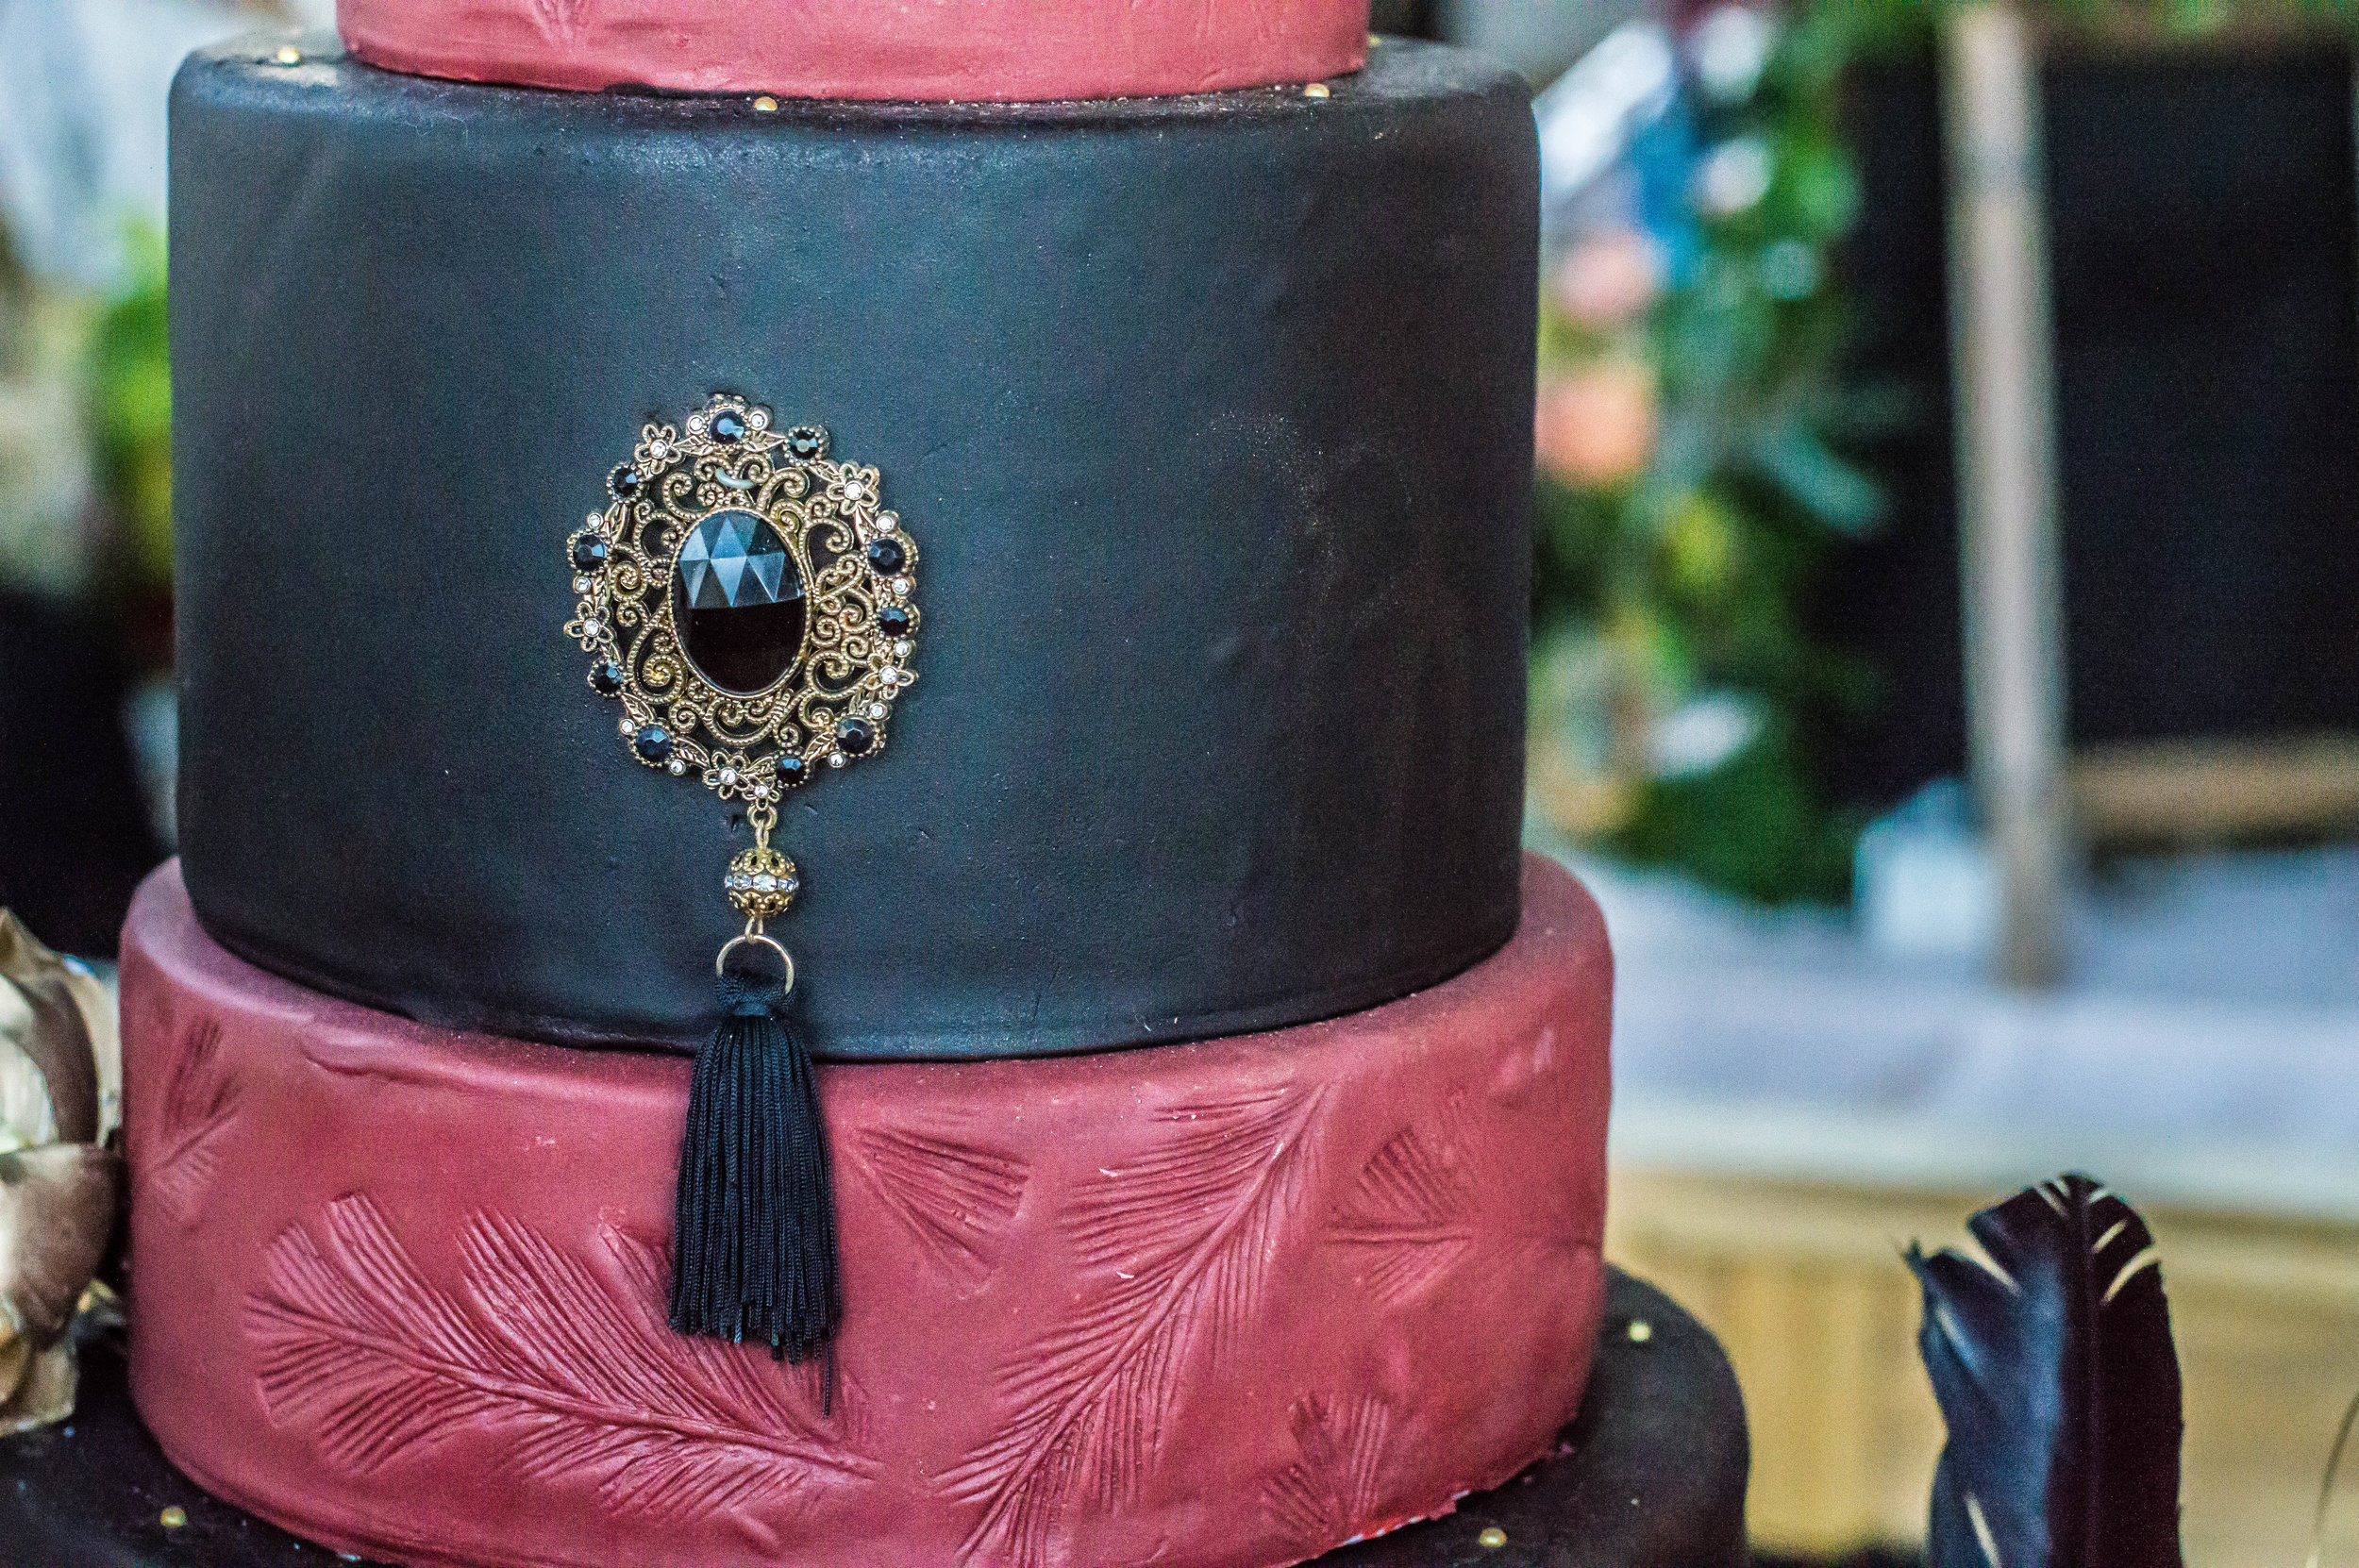 Gorgeous cake from Chef Dana from Desserts By Dana